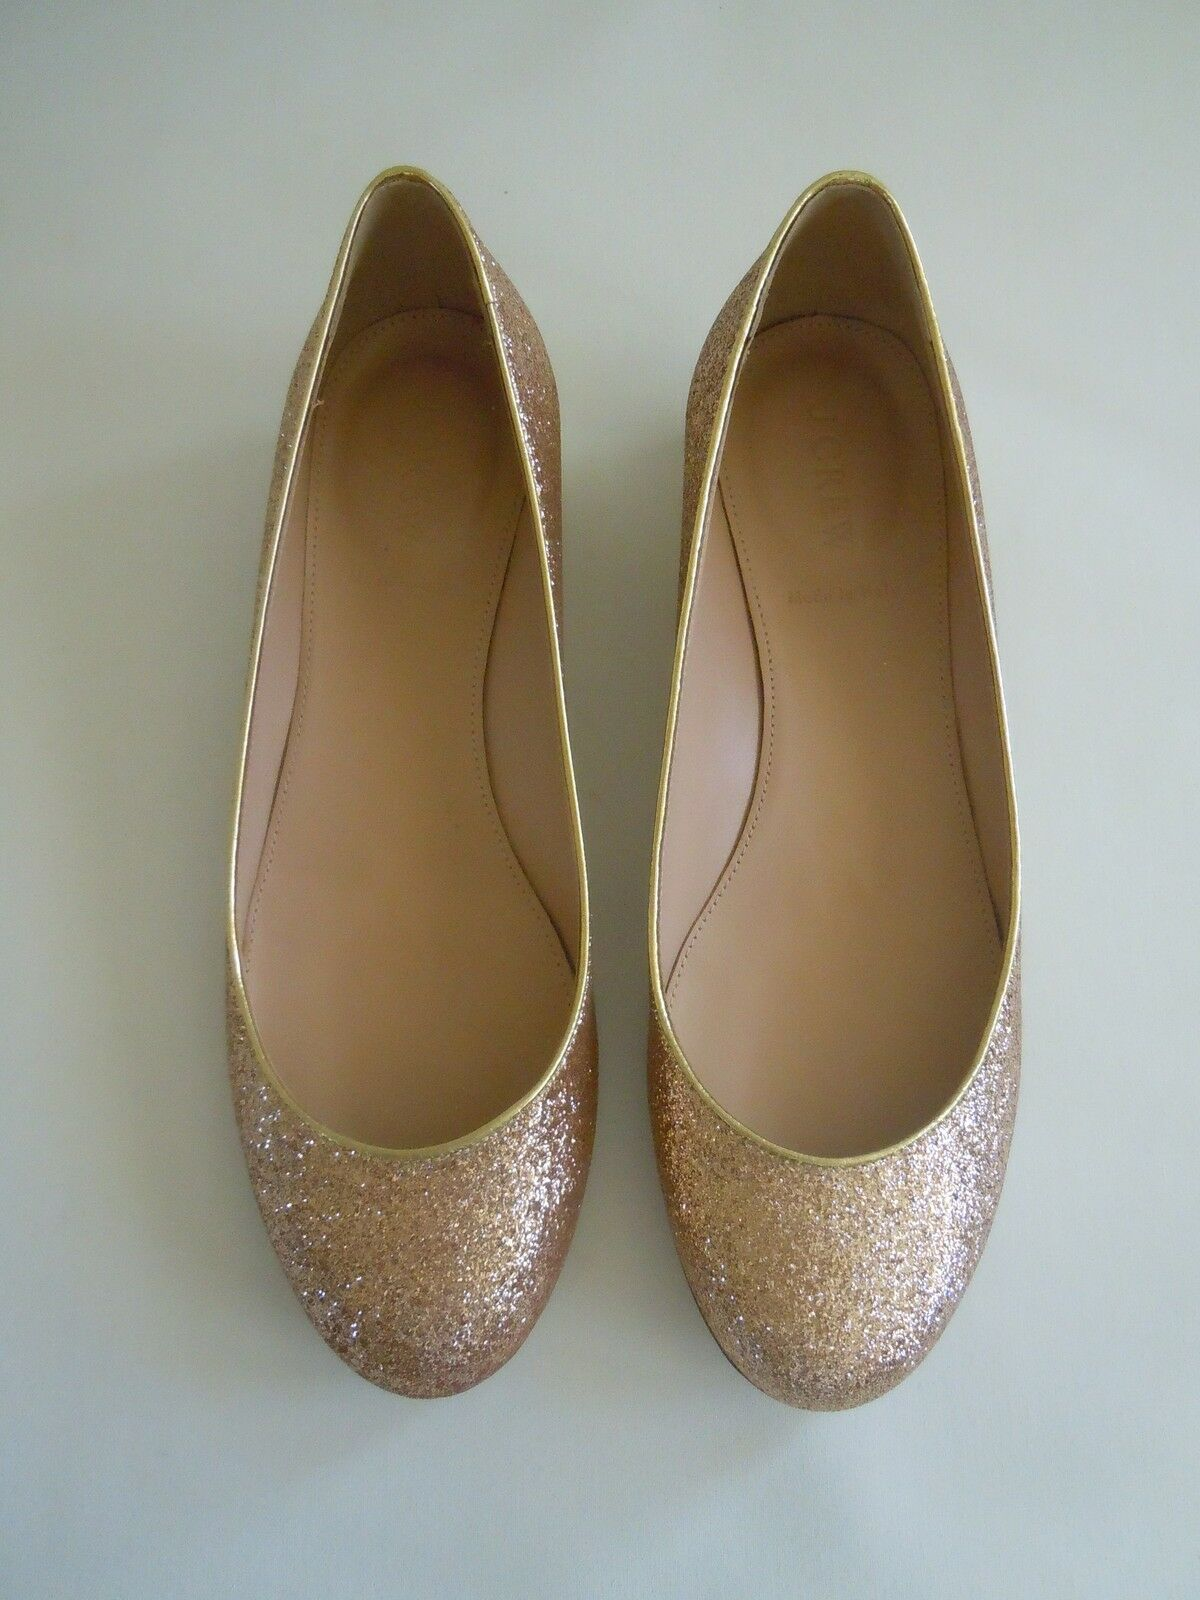 Brand New J. CREW Size 9 JANEY GLITTER FLATS in the color METALLIC GOLD